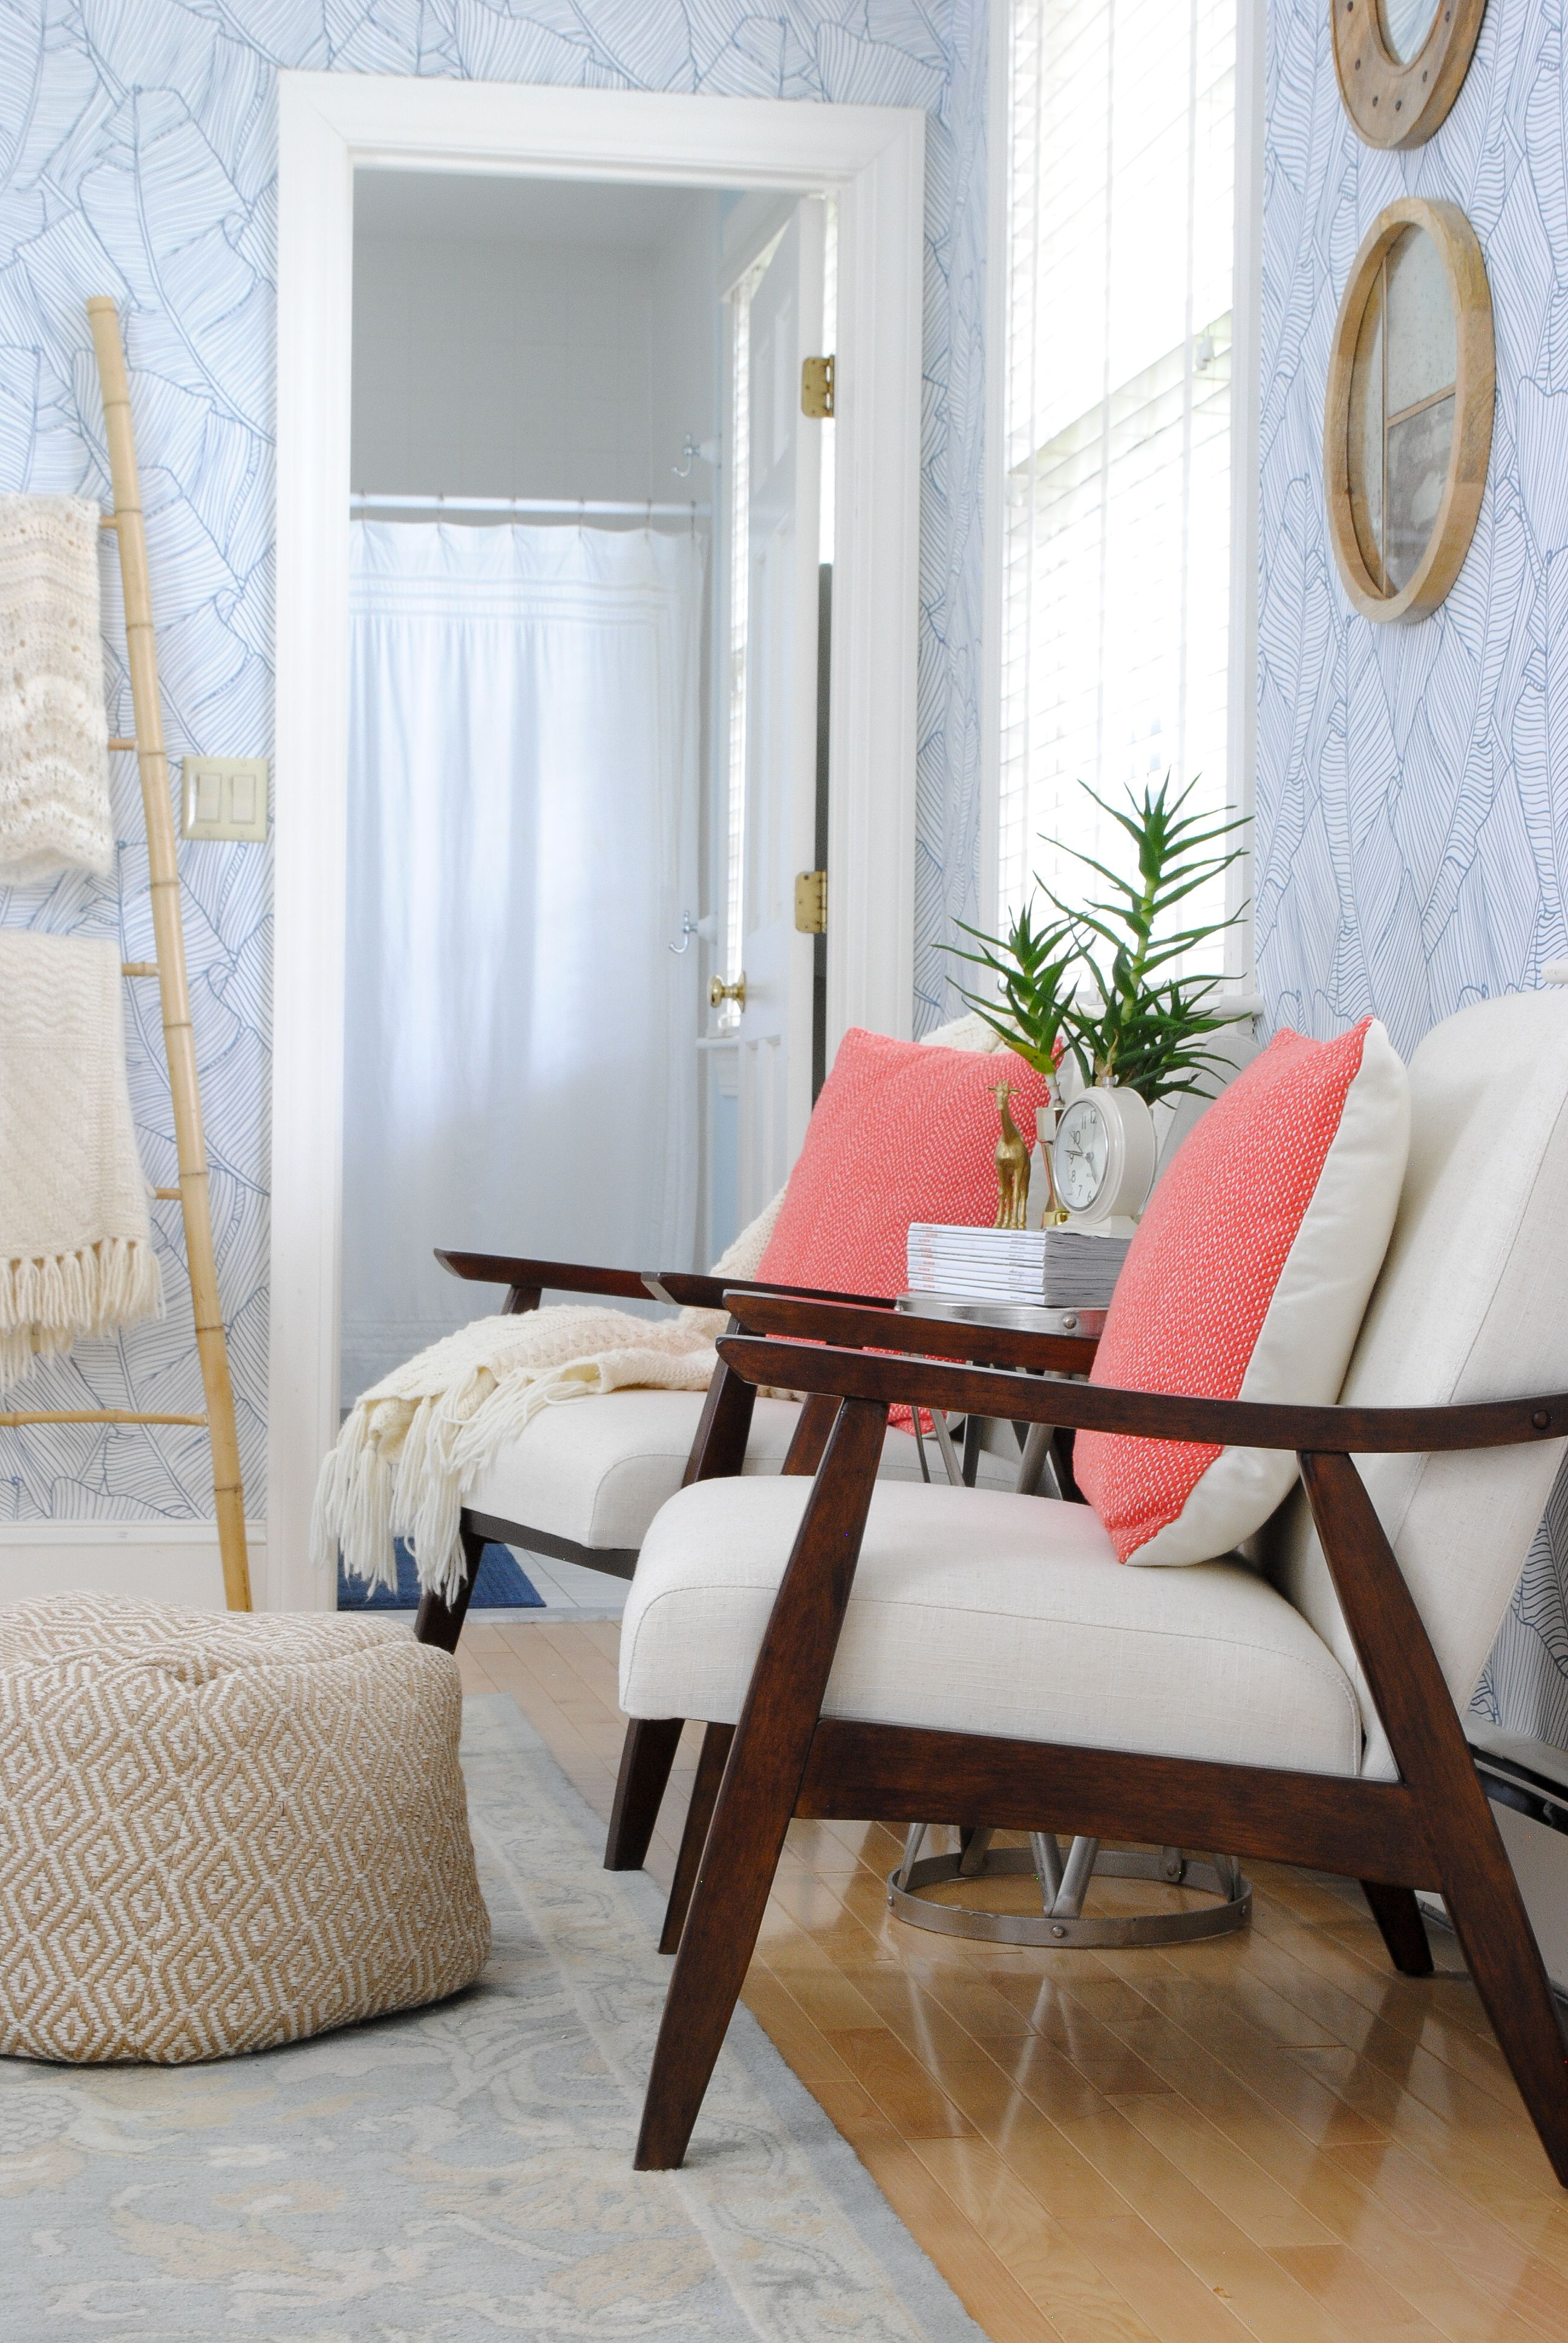 Design Chairs For Living Room Midcentury Modern Chairs In The Guest Room  Modern Chairs Mid